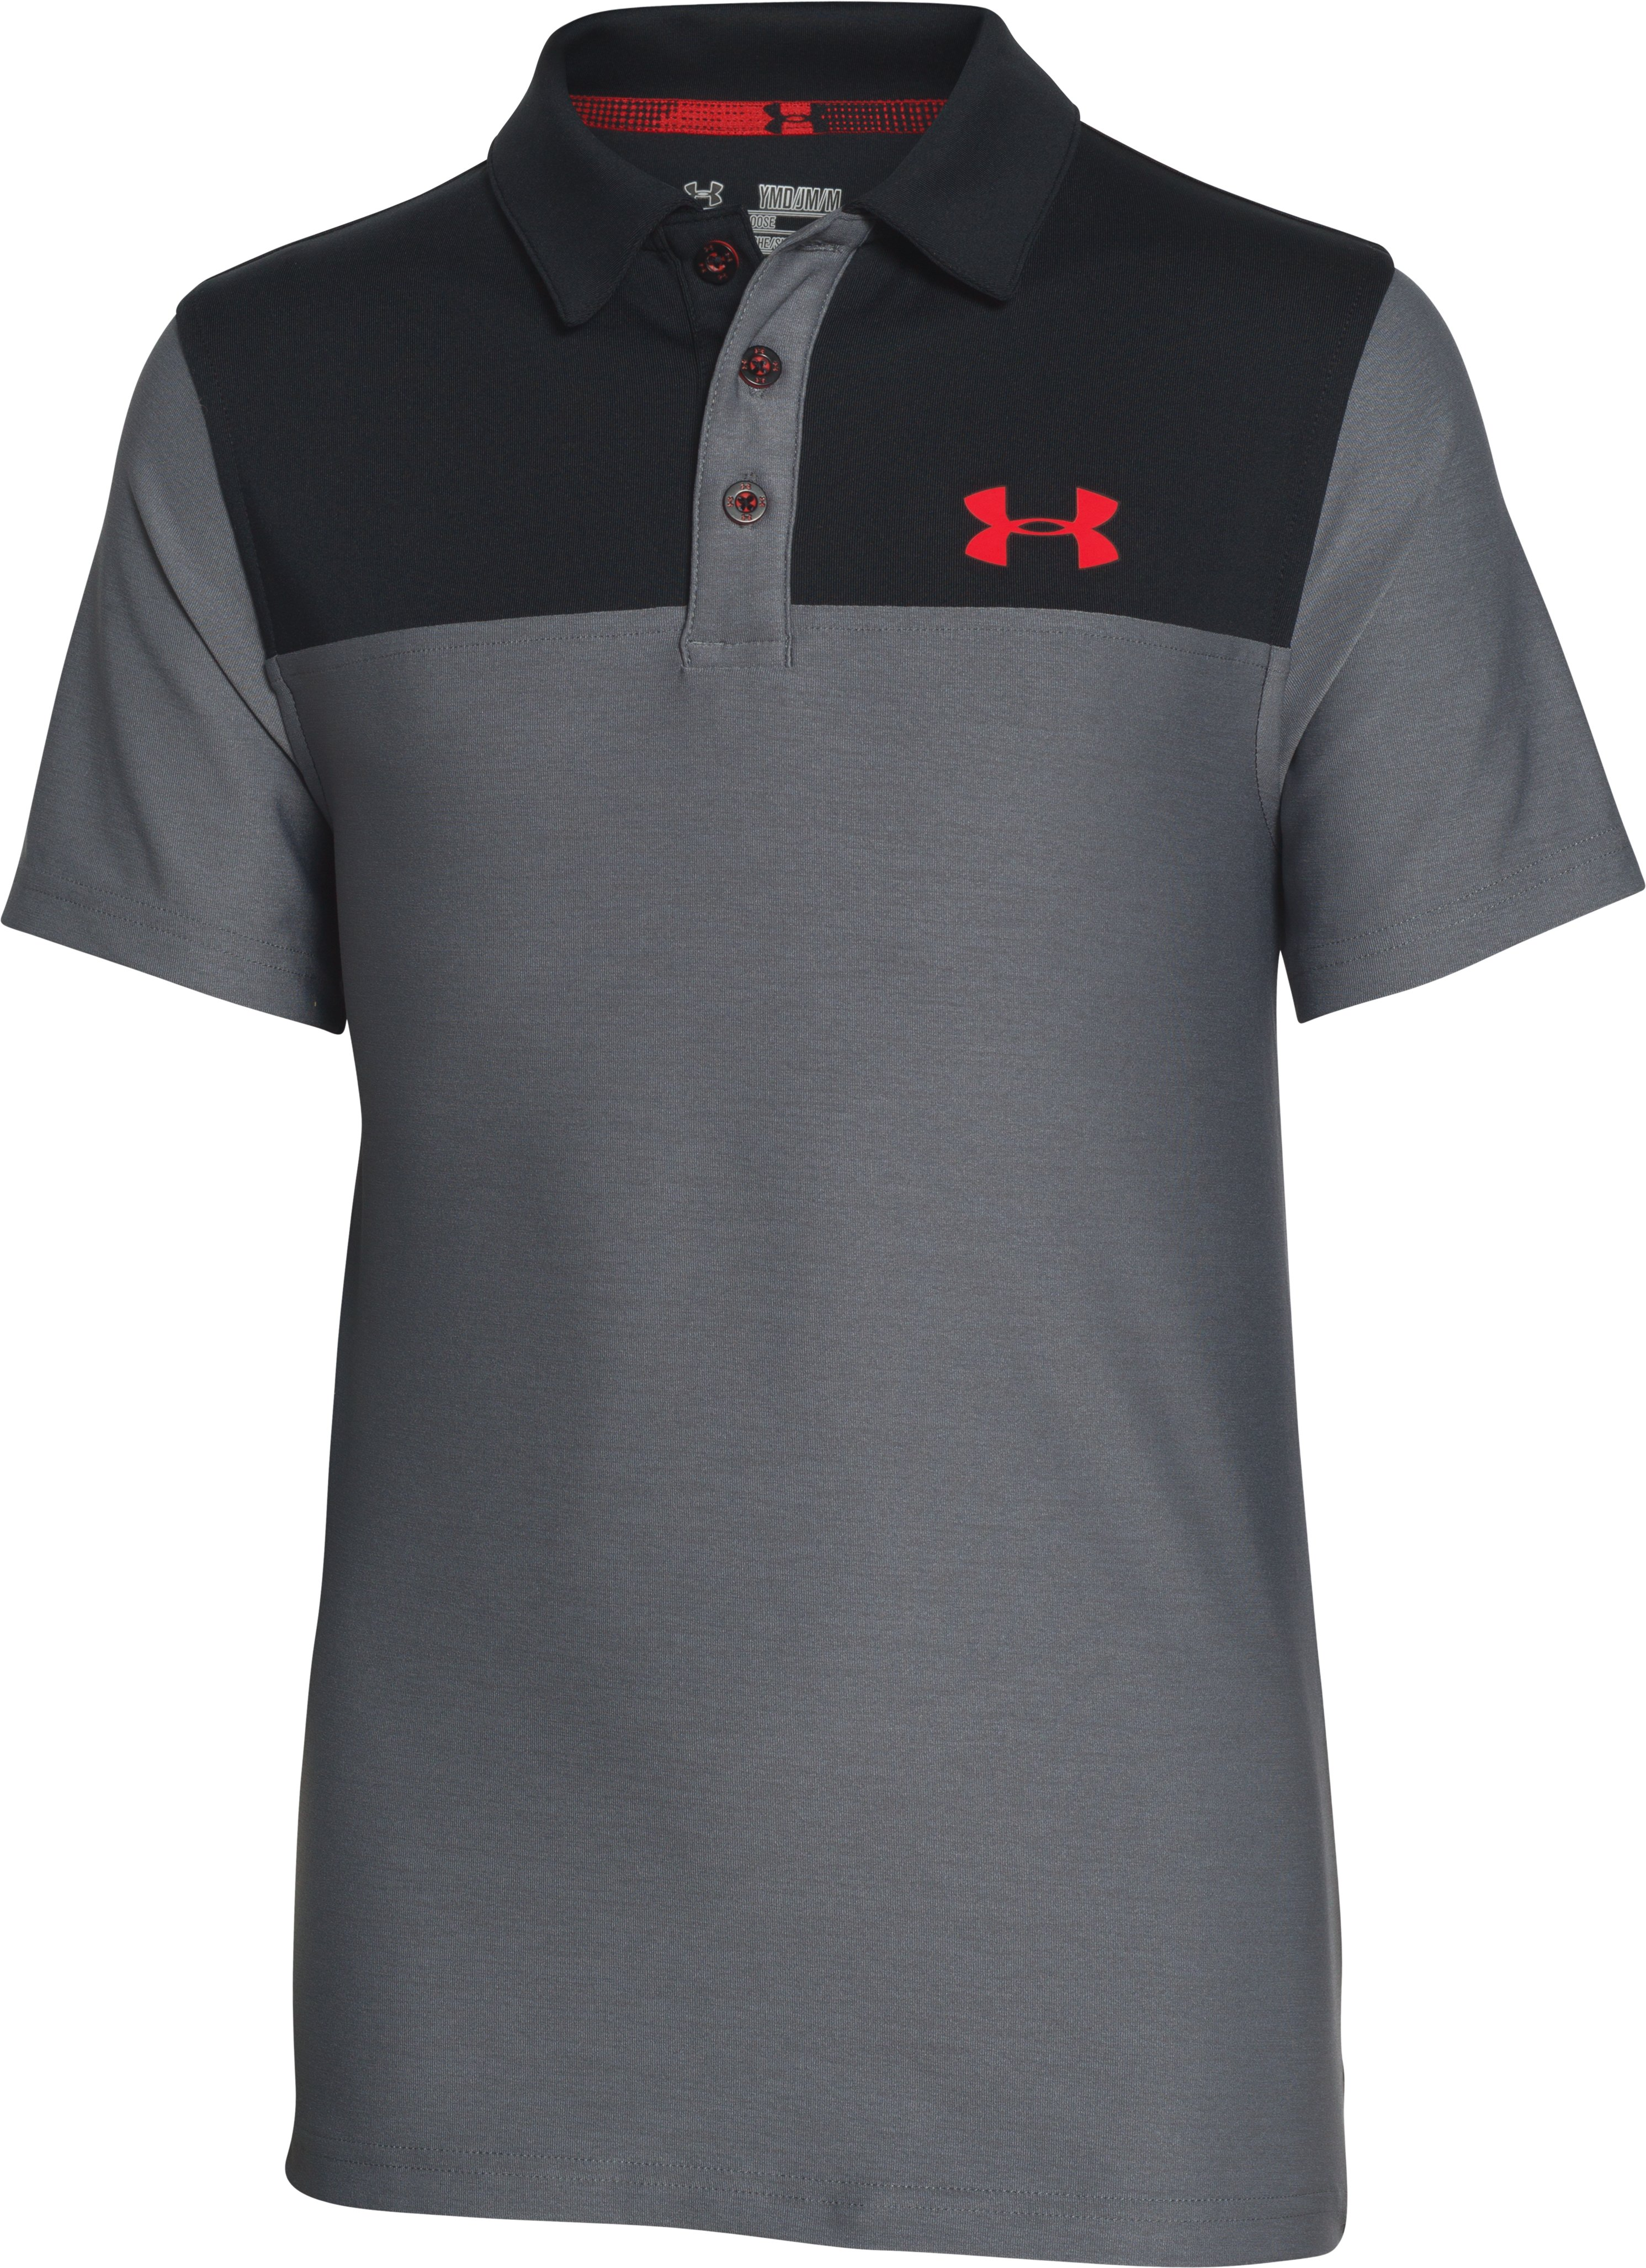 Boys' UA Match Play Blocked Polo , Graphite, zoomed image